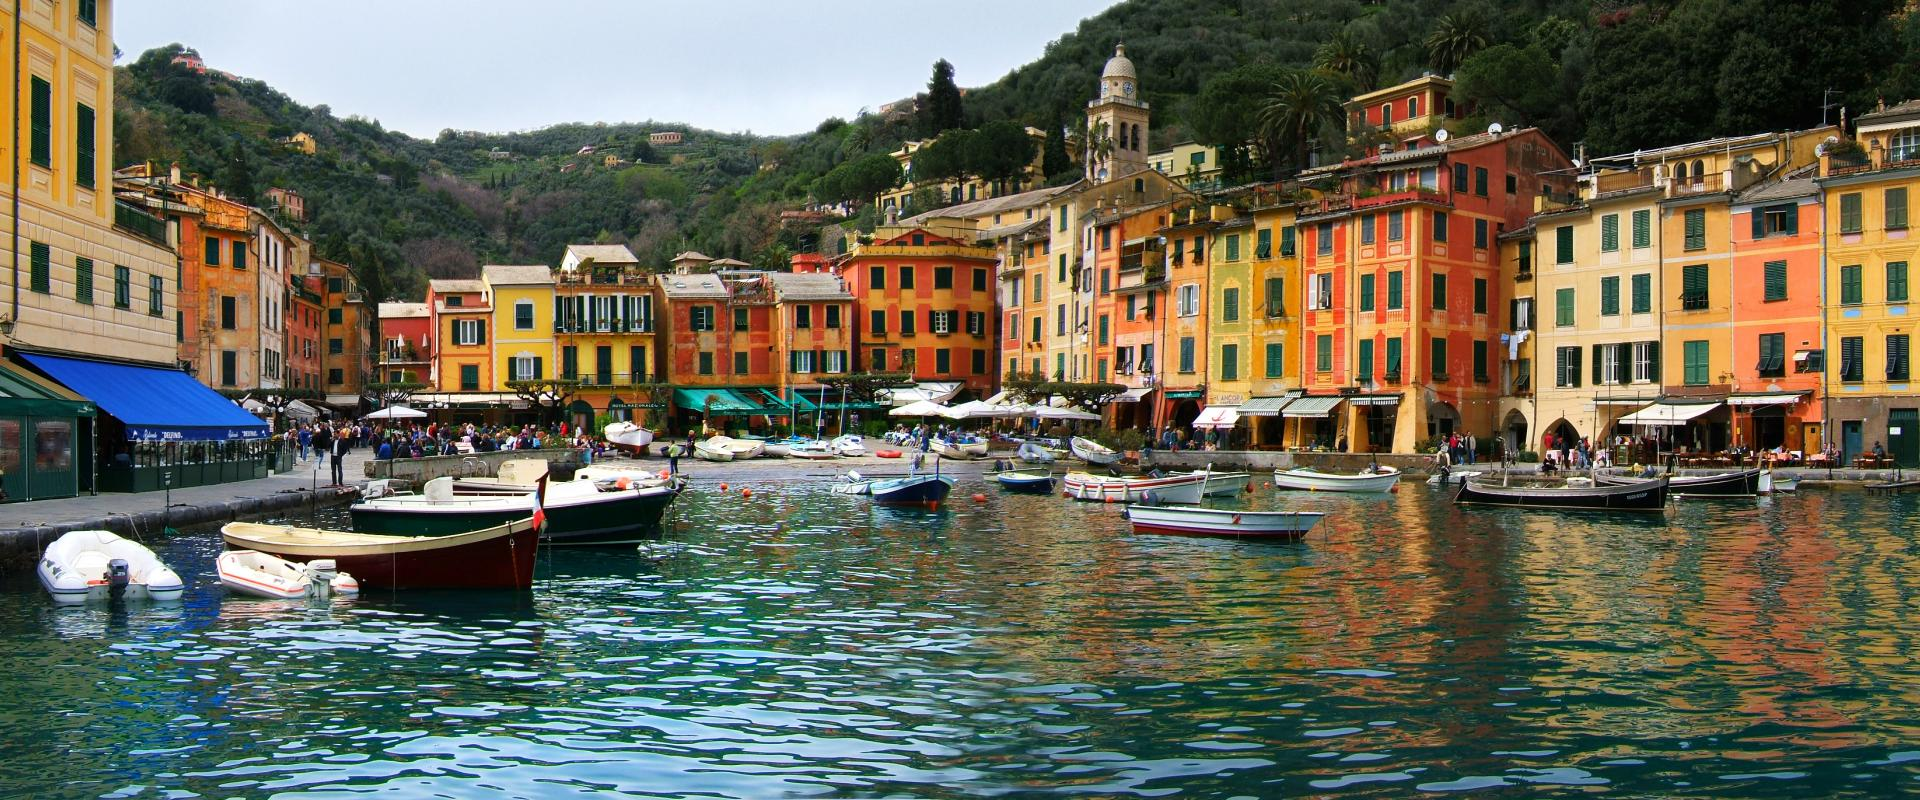 Guided tour of Portofino, cooking exhibition and tasting lunch